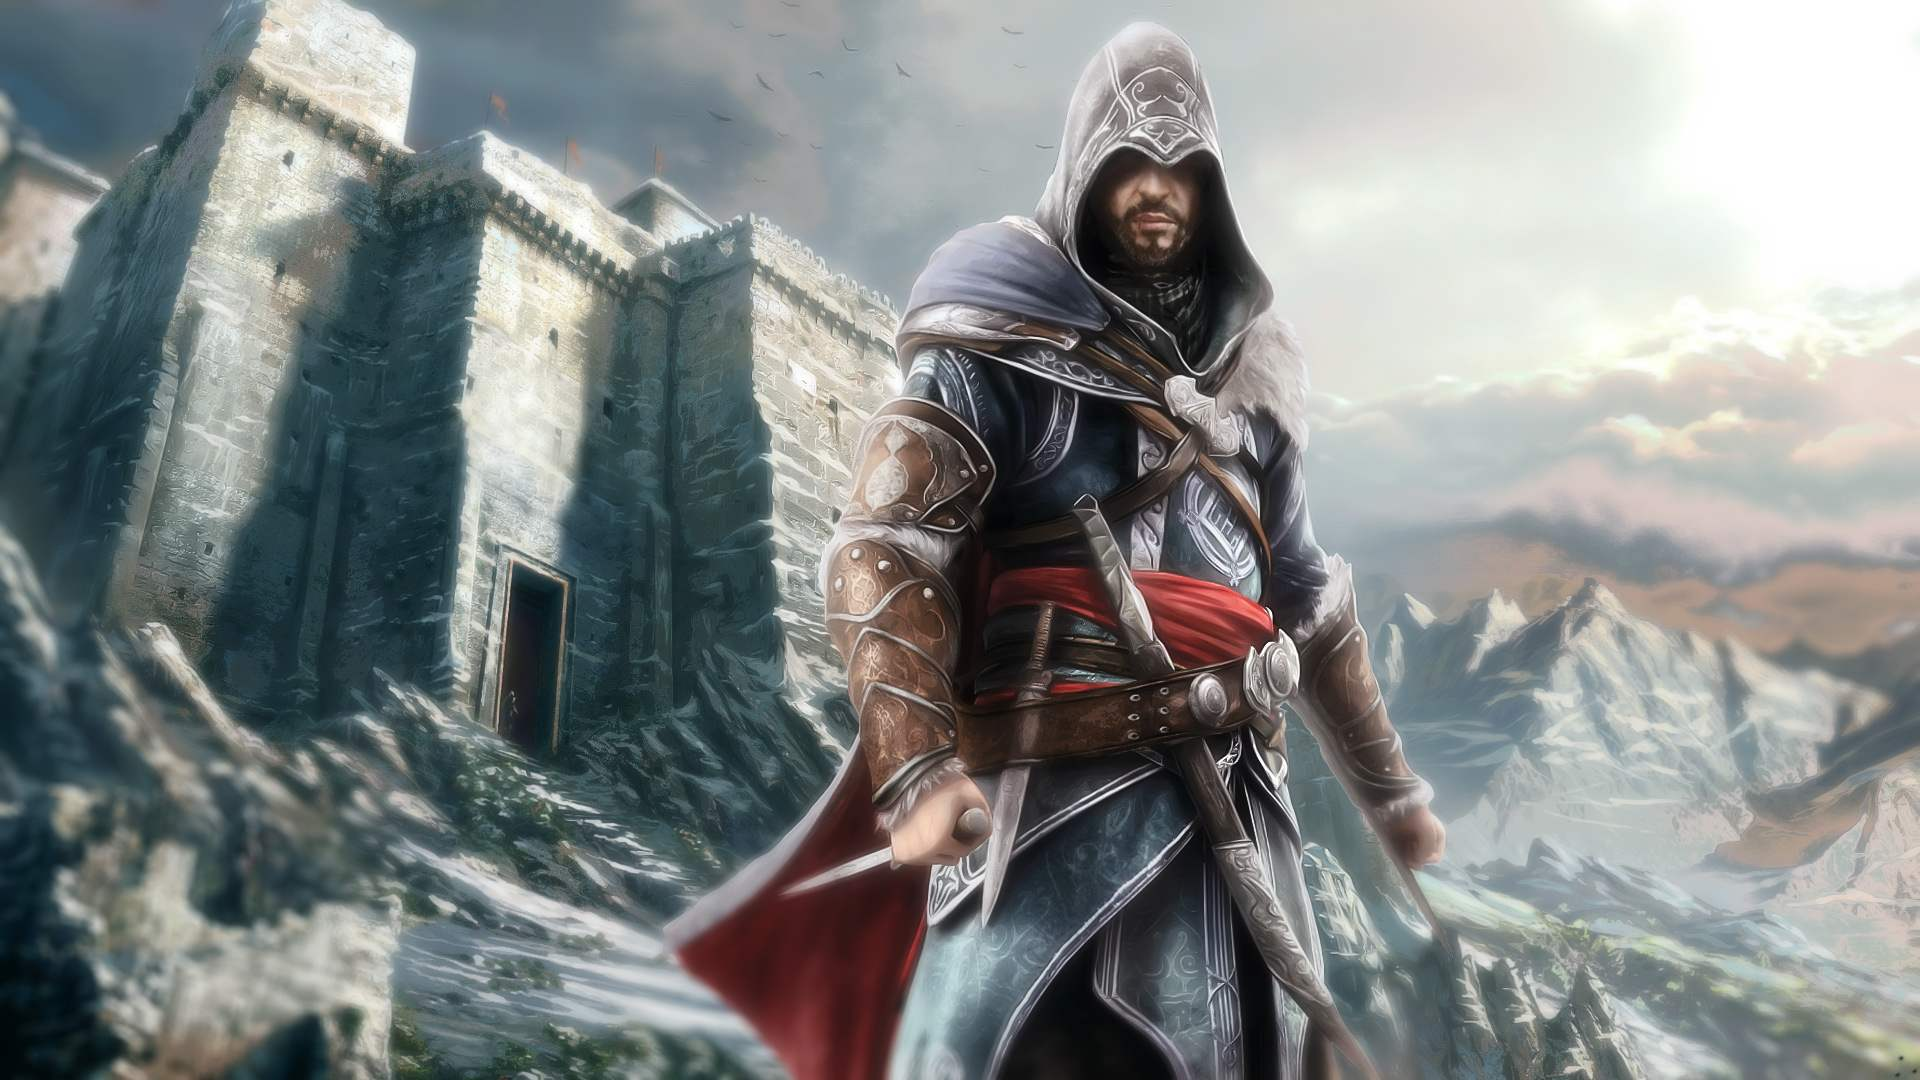 Old man Ezio's makeover did wonders for him